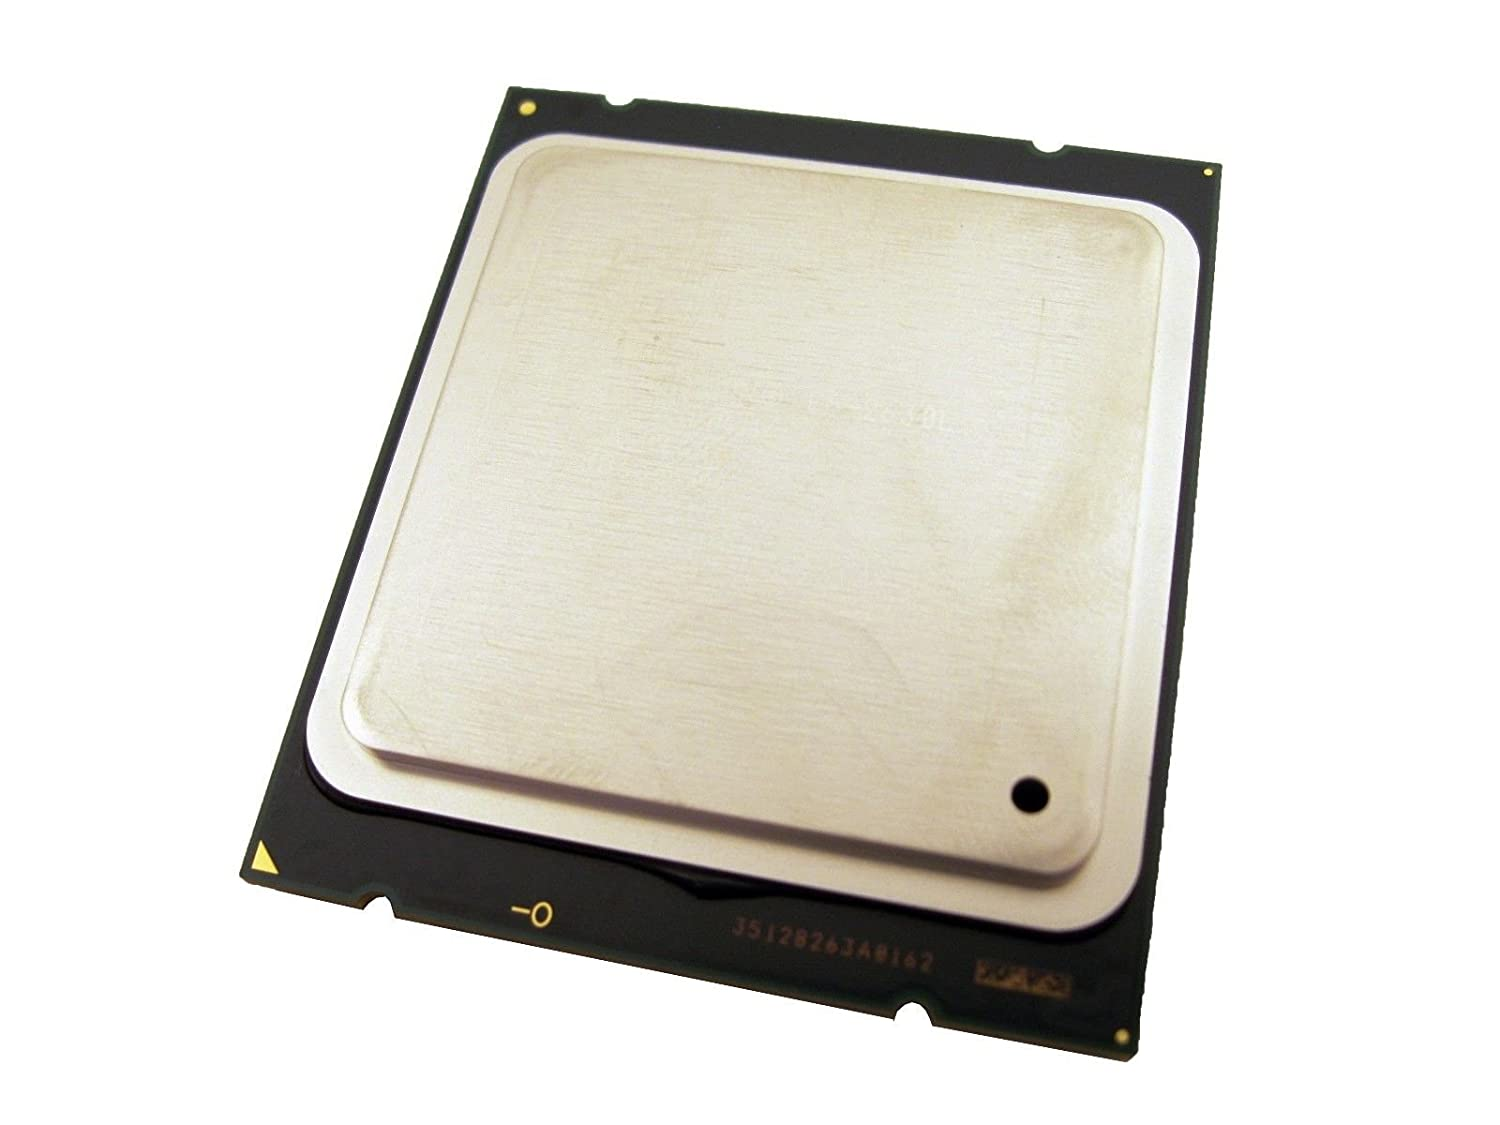 SR0KM INTEL XEON E5-2630L 6 CORE 2.00GHz 15M 7.2GT//s 60W PROCESSOR